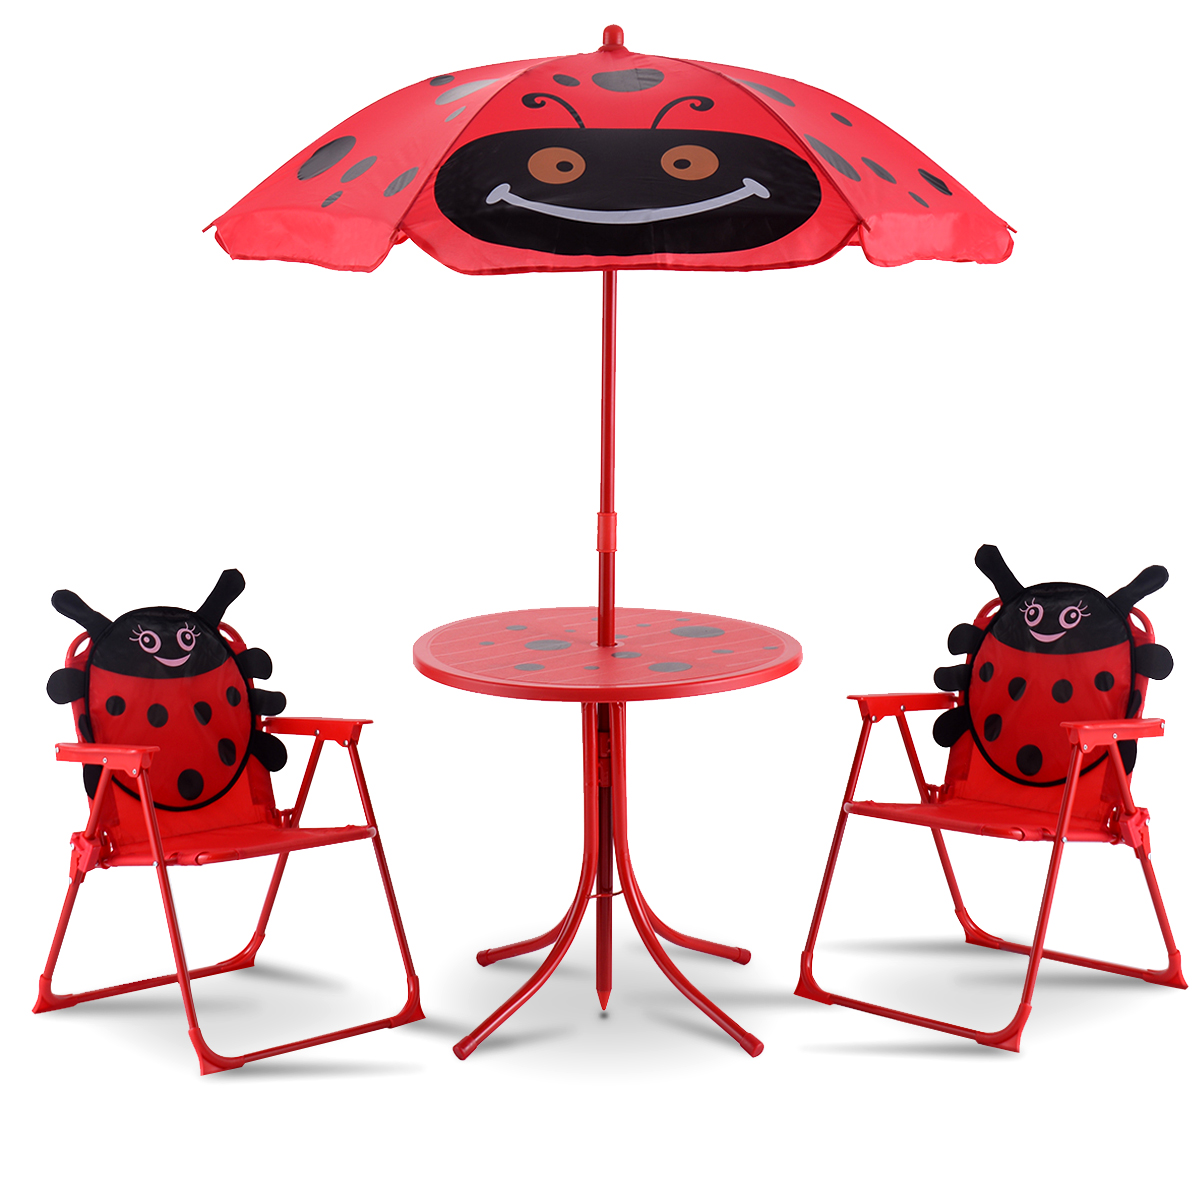 Product Image Costway Kids Patio Set Table And 2 Folding Chairs w/ Umbrella Beetle Outdoor Garden Yard  sc 1 st  Walmart & Kidu0027s Outdoor Furniture - Walmart.com - Walmart.com